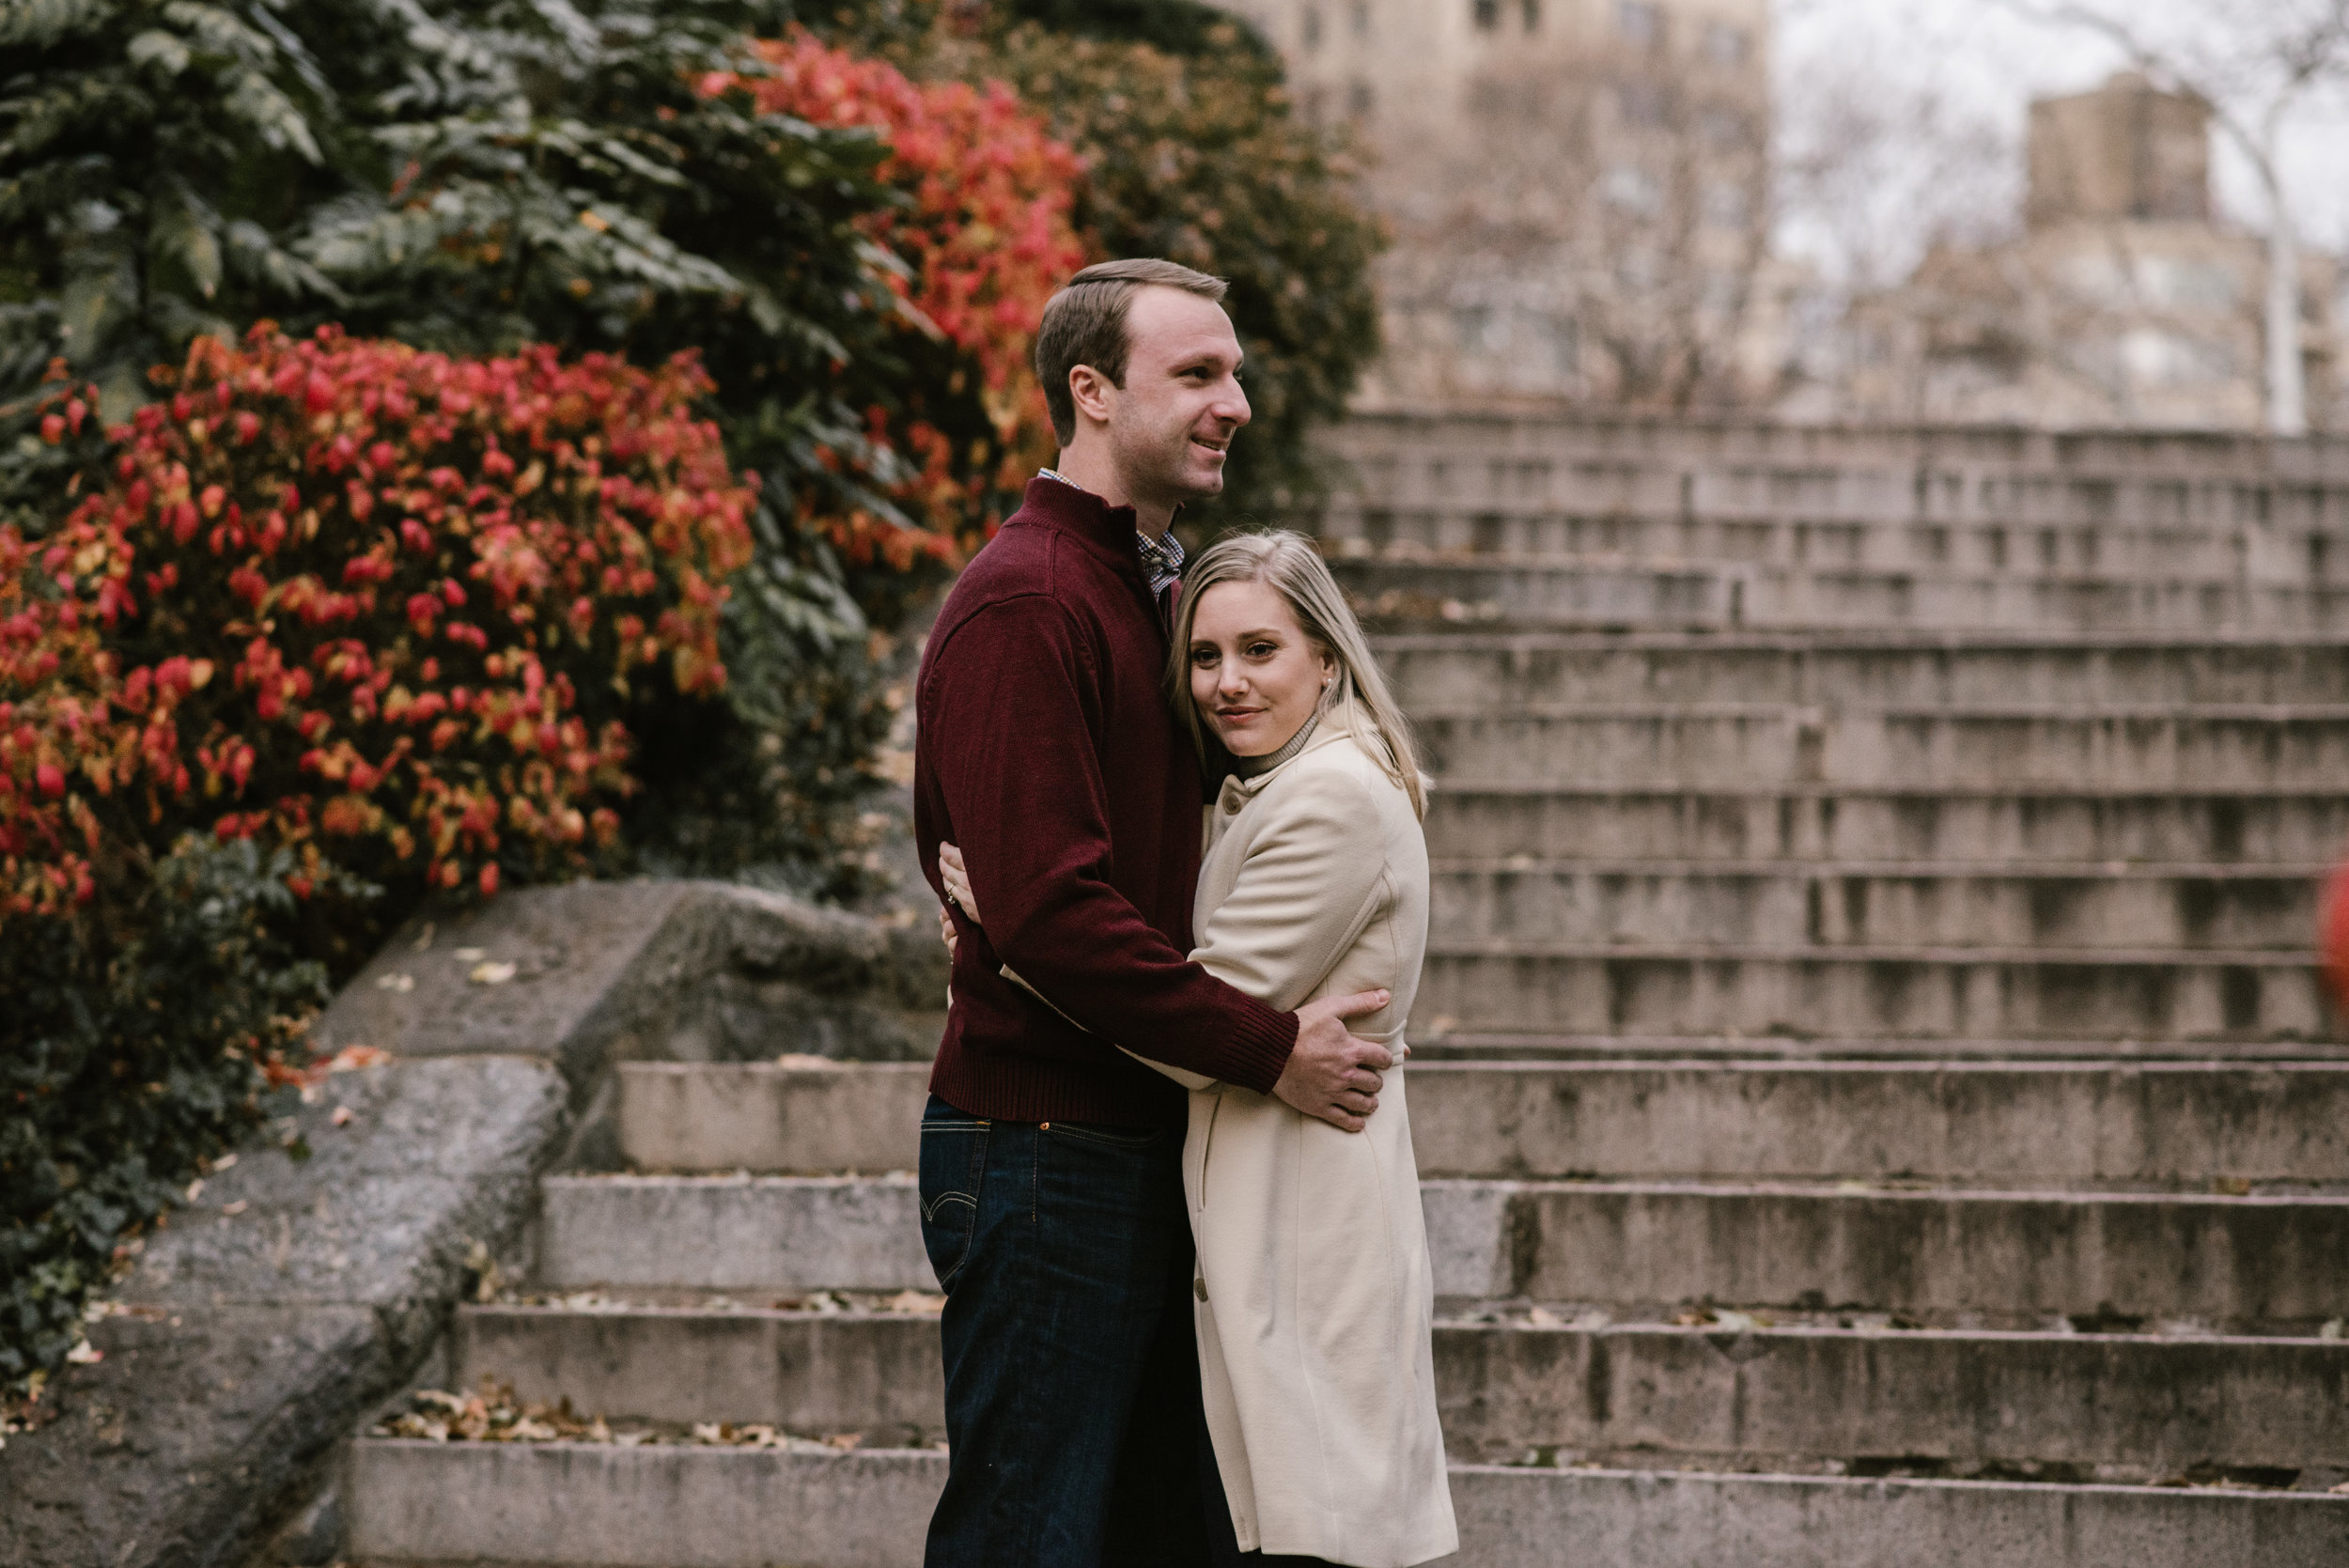 manhattanengagementsession-13.jpg